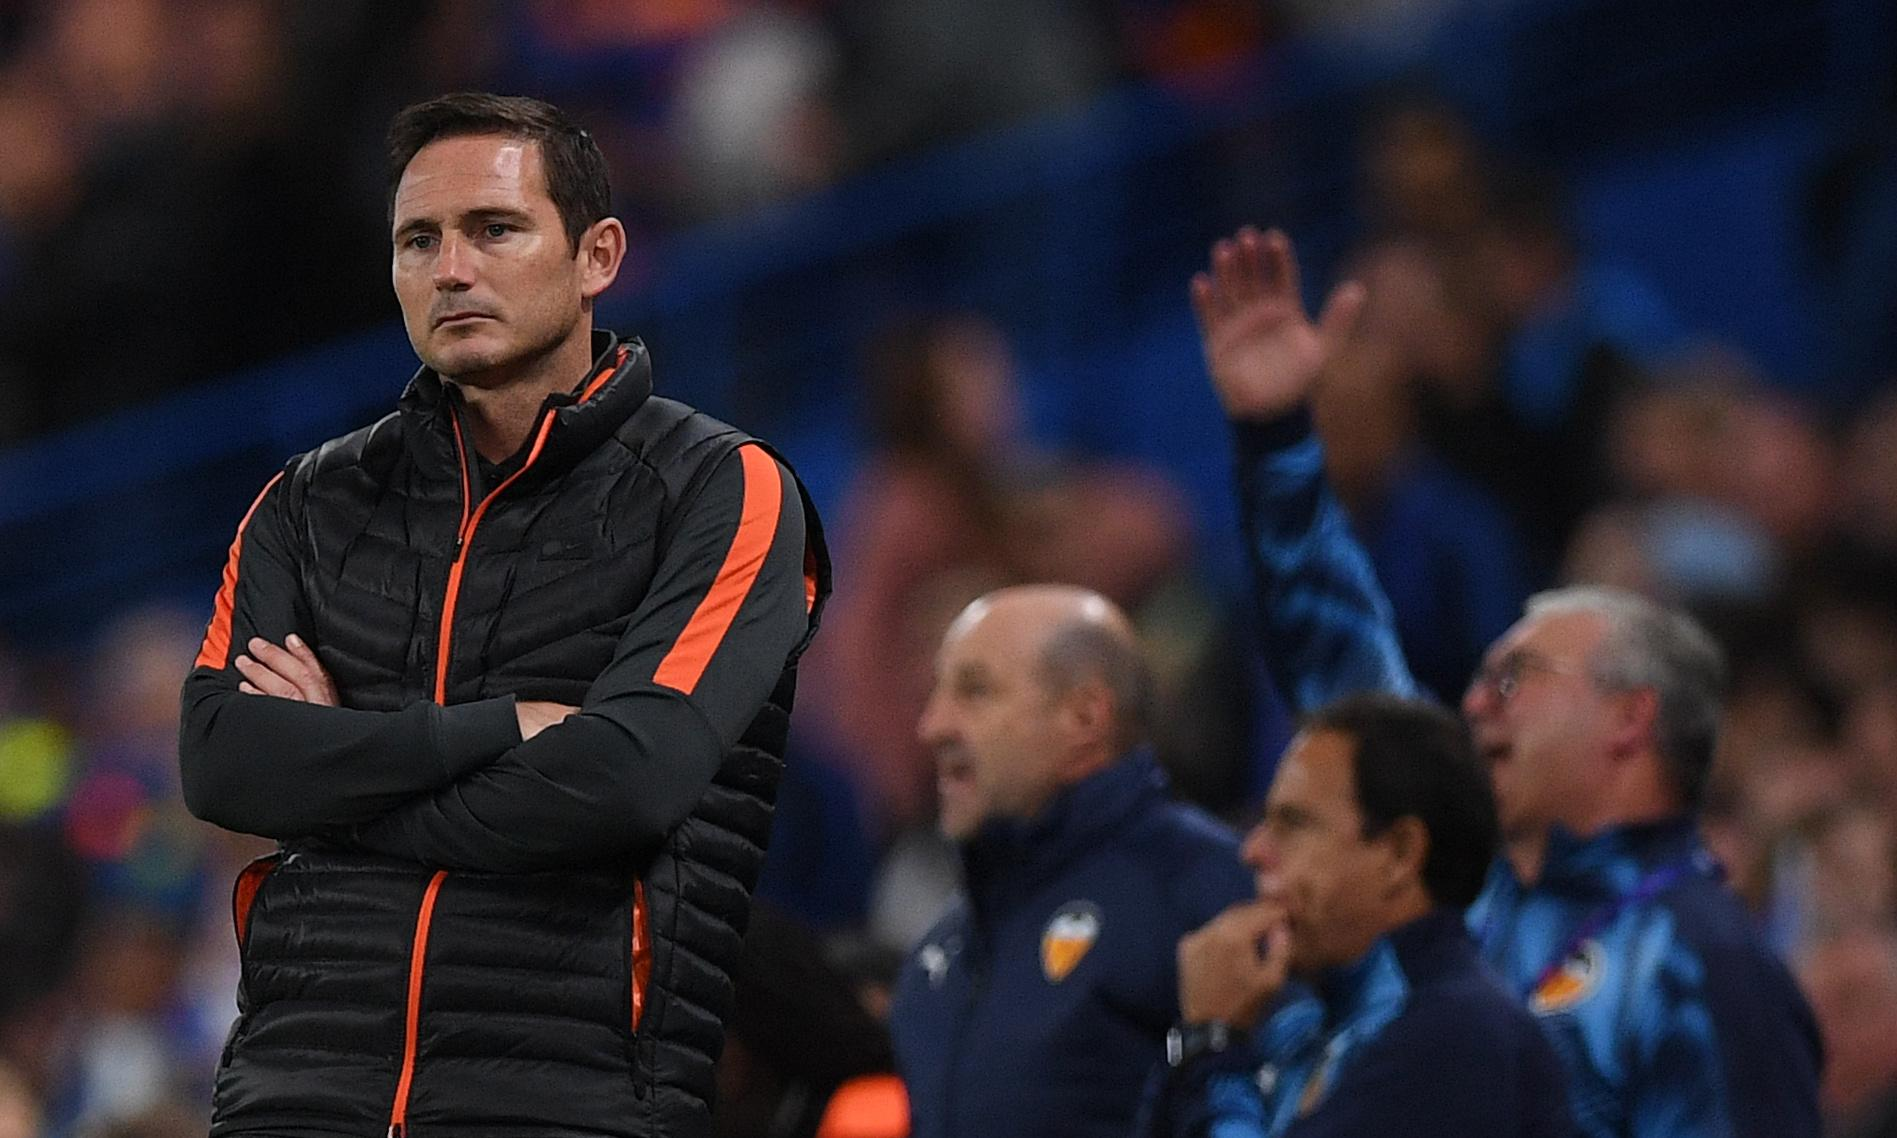 Frank Lampard says Chelsea defeat was harsh Champions League lesson